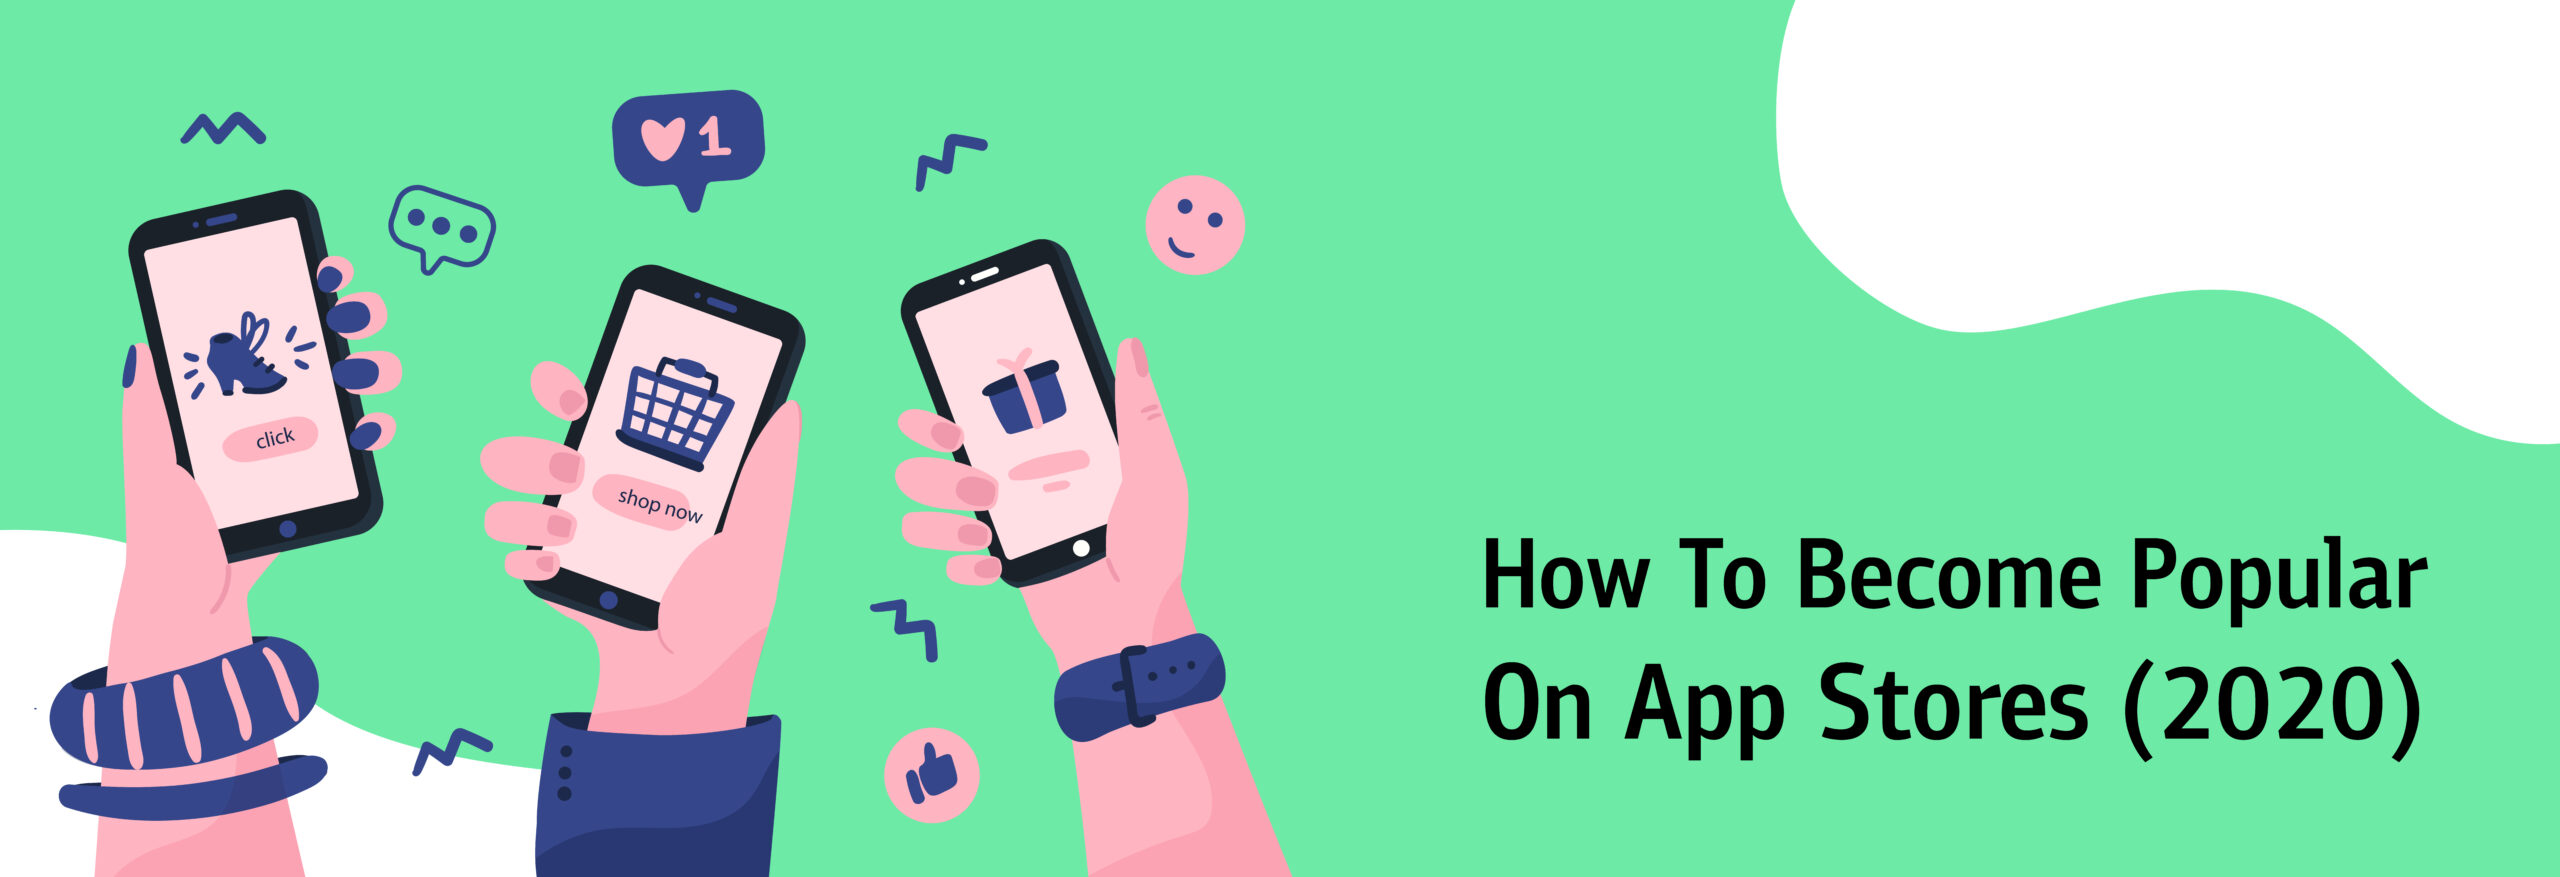 become popular on app stores